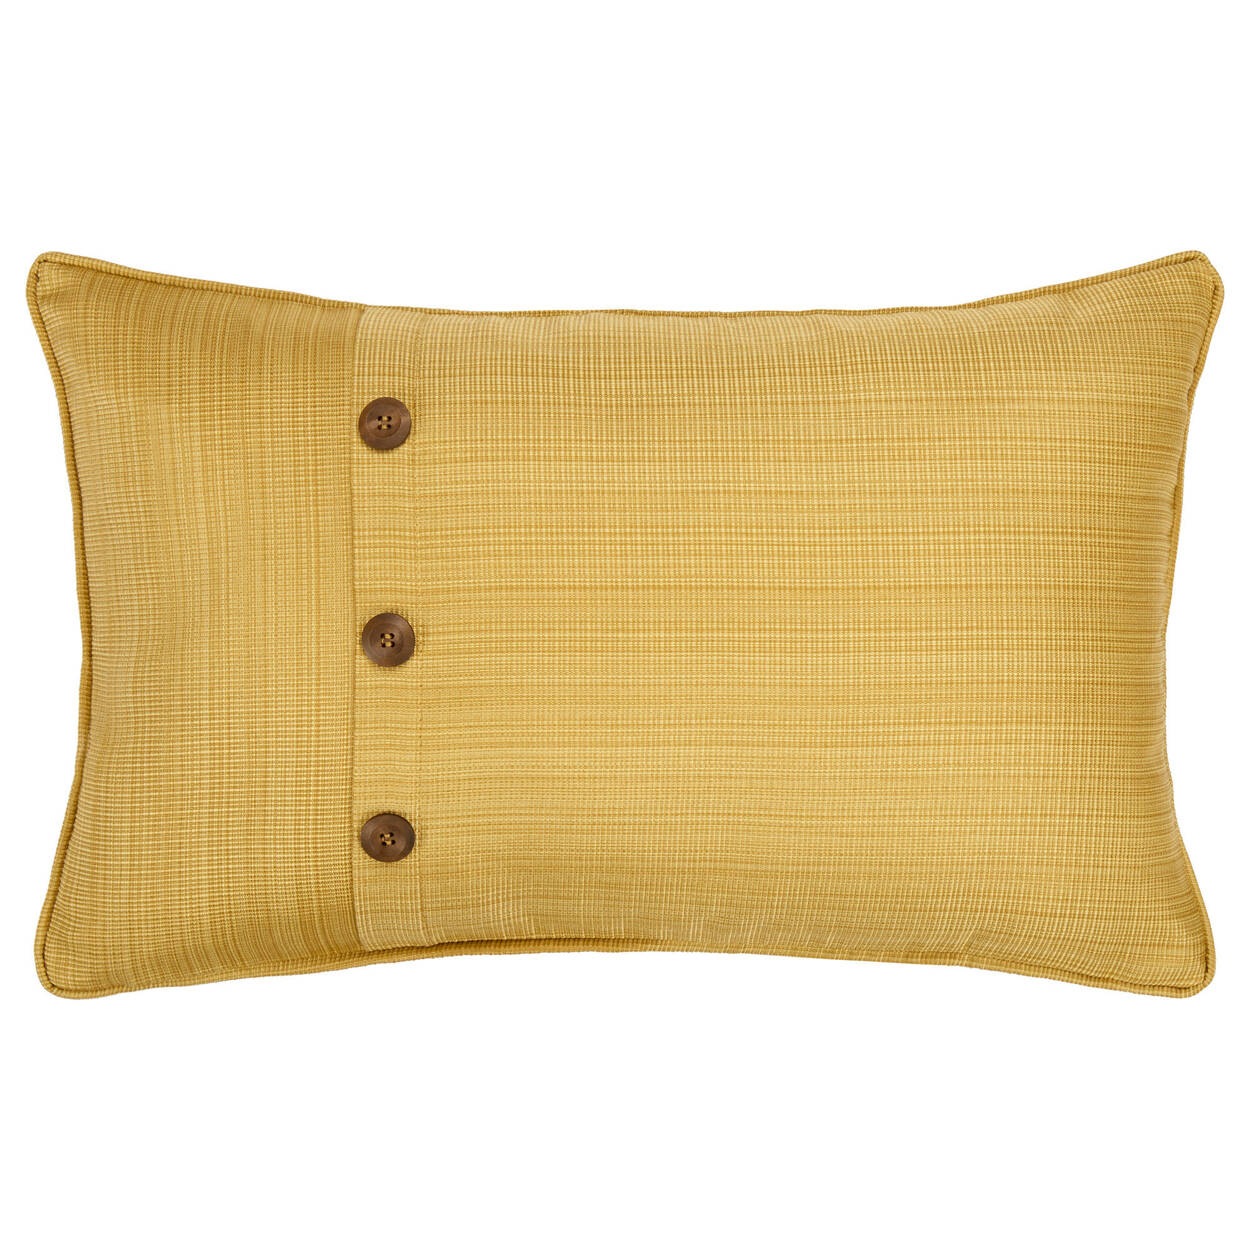 "Huri Decorative Lumbar Pillow 13"" X 20"""